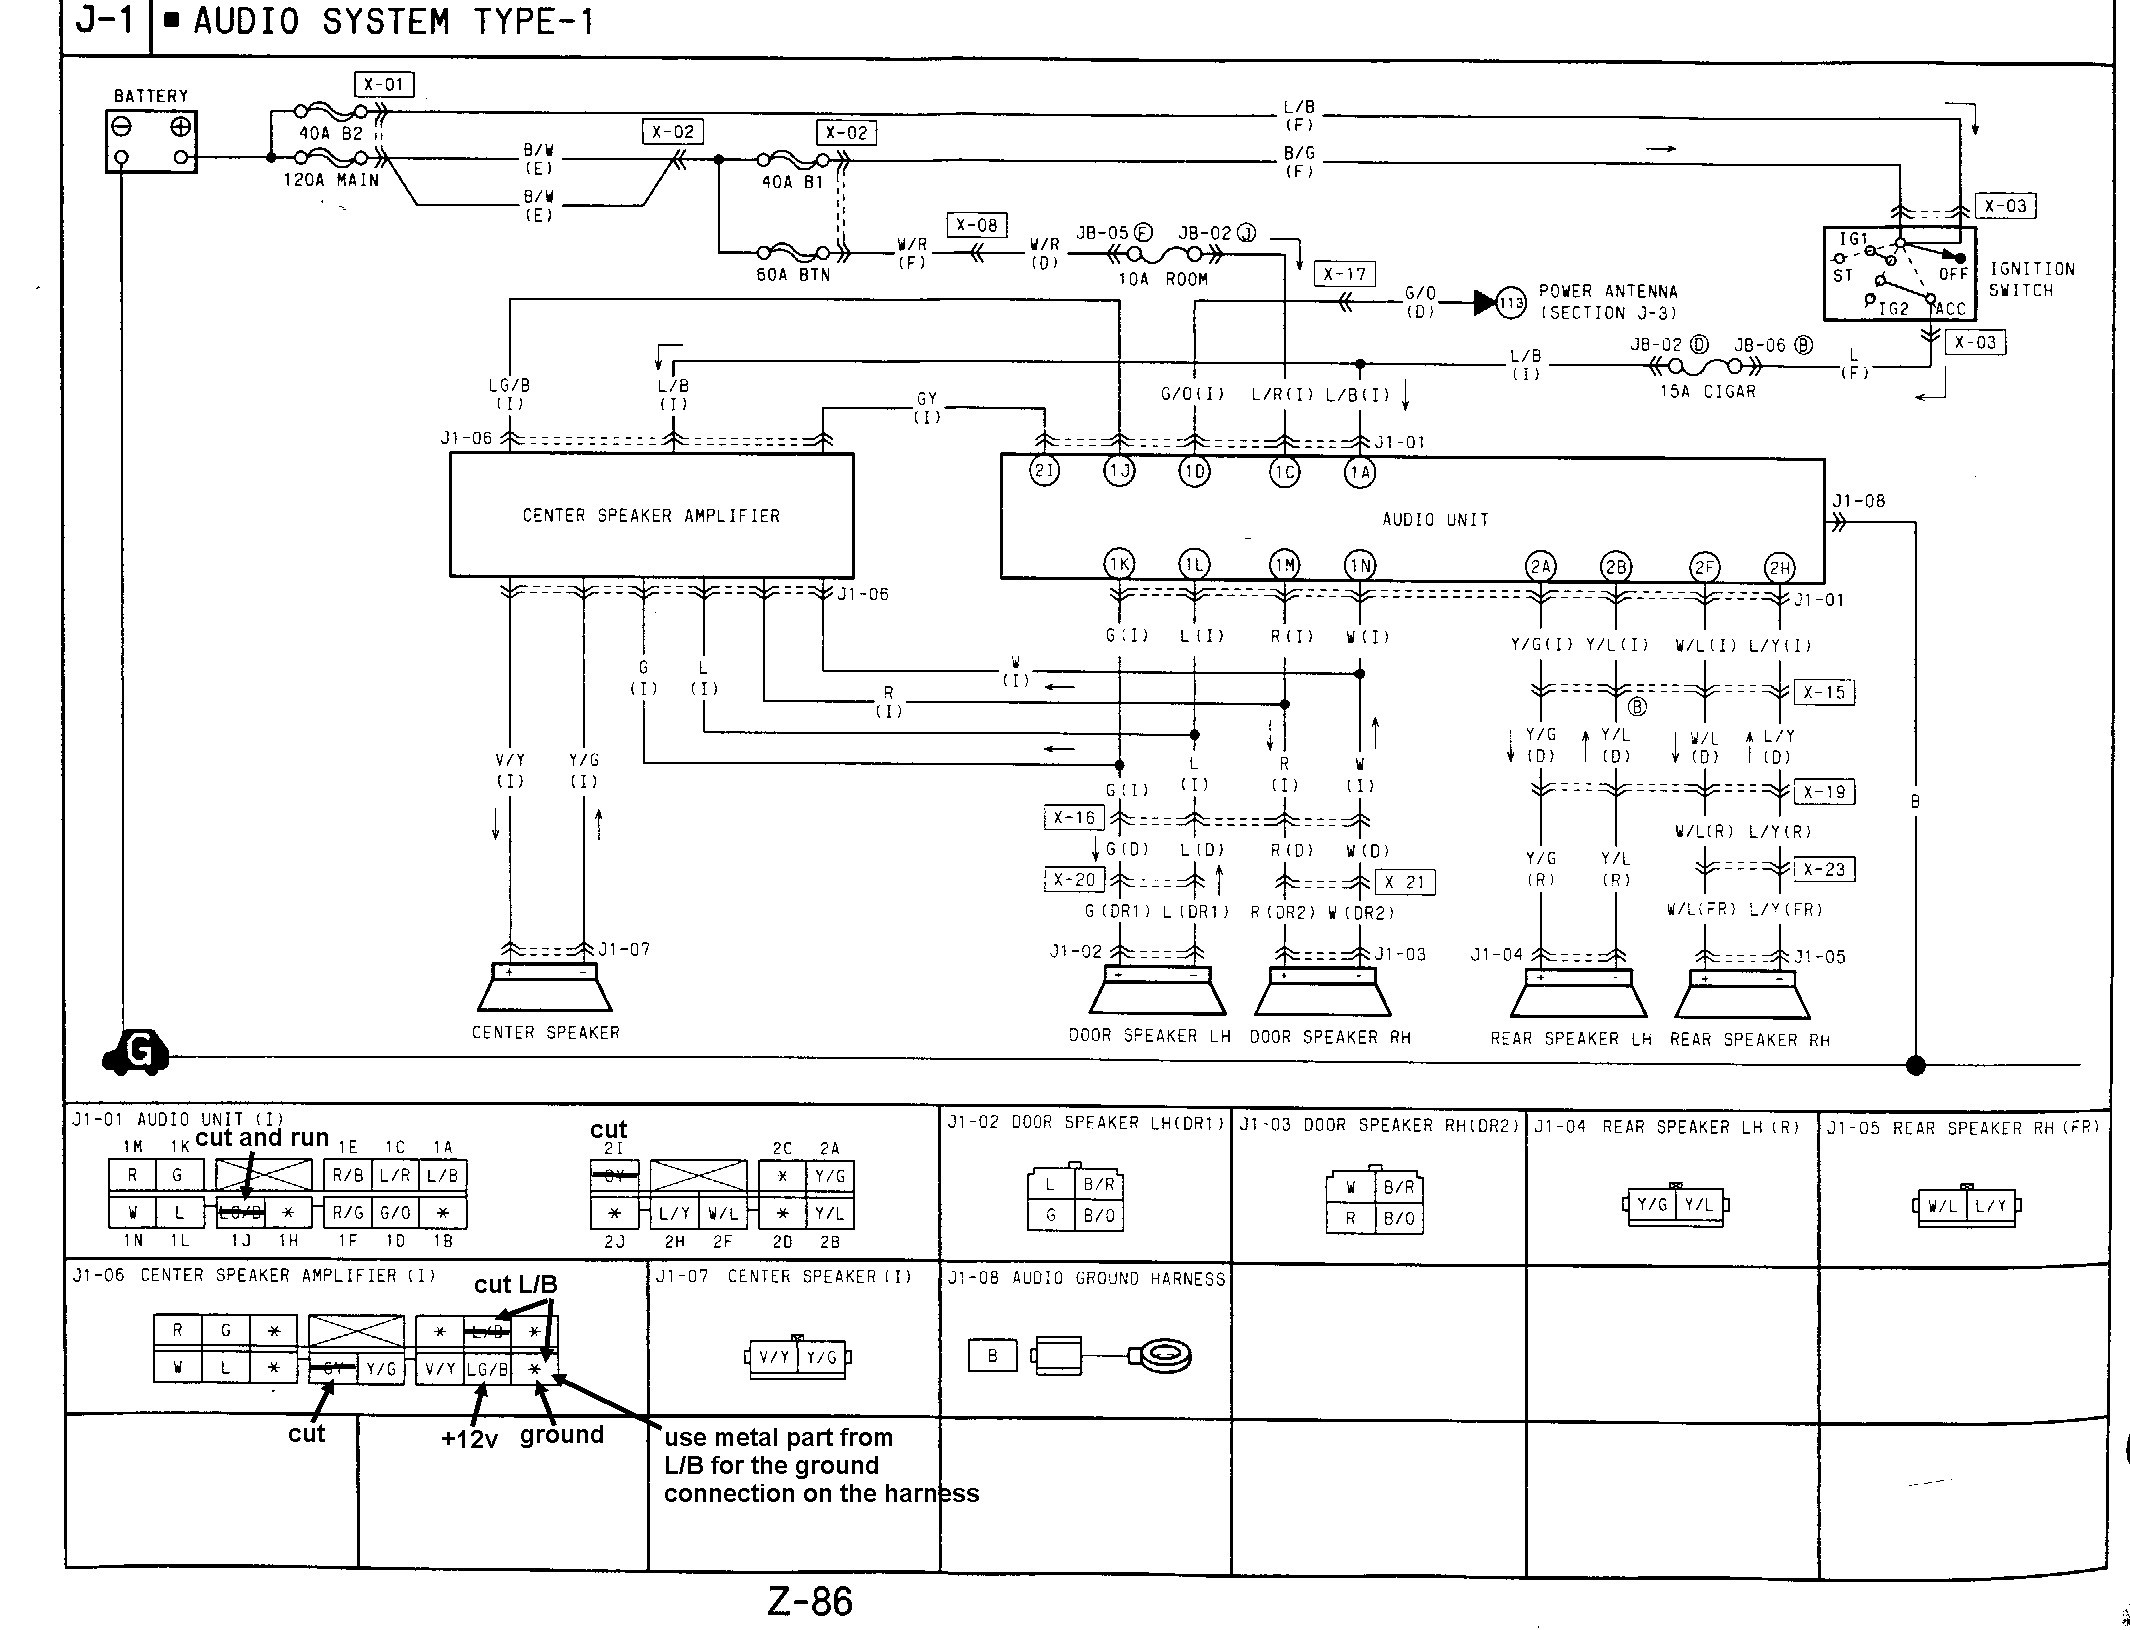 Car Electrical Diagram Lovely Car Stereo Wiring Diagram Diagram Of Car Electrical Diagram